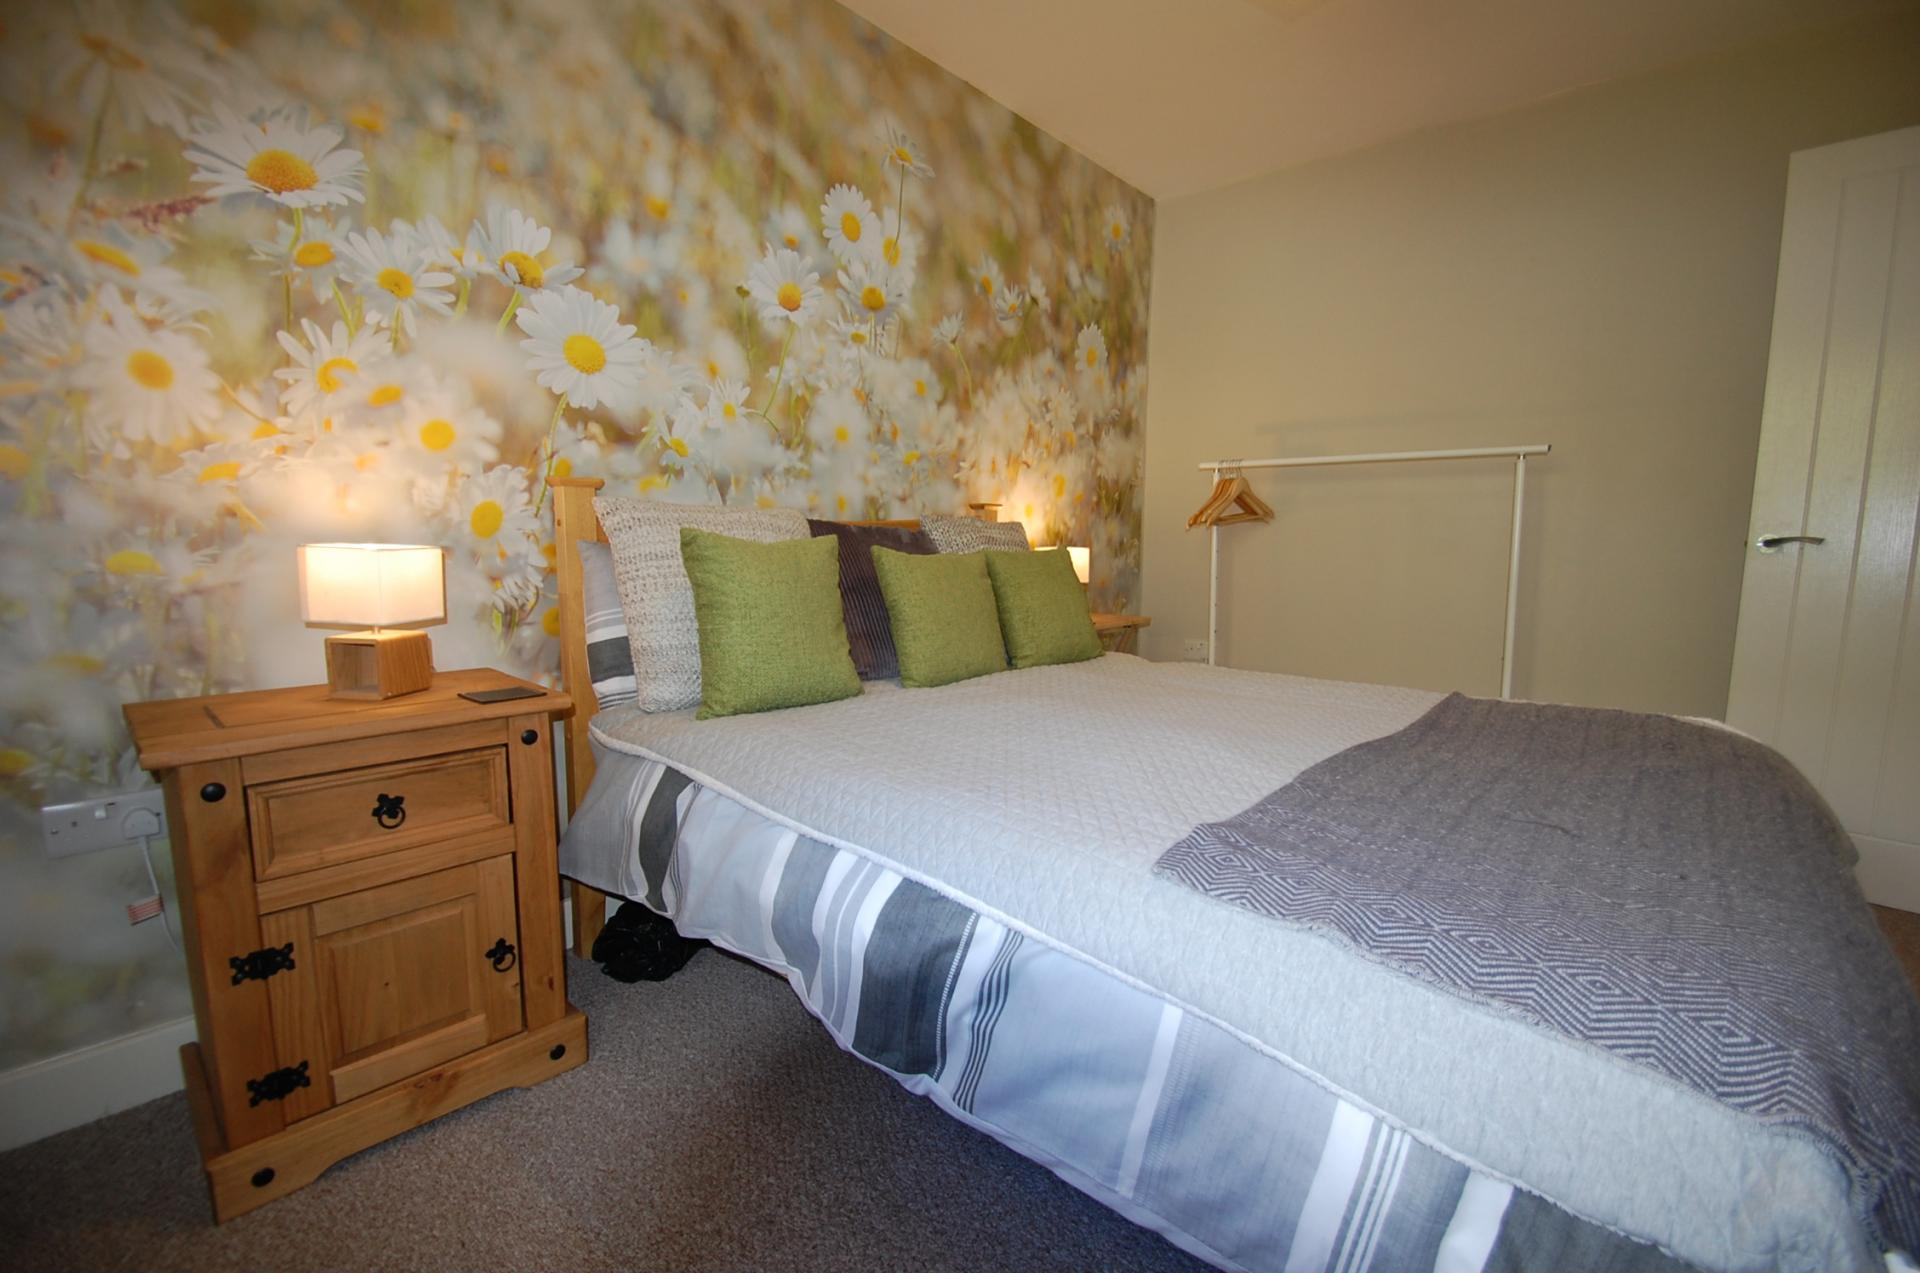 Comfy Bed at Cosy Dragon @ Tanglewood House - Citybase Apartments